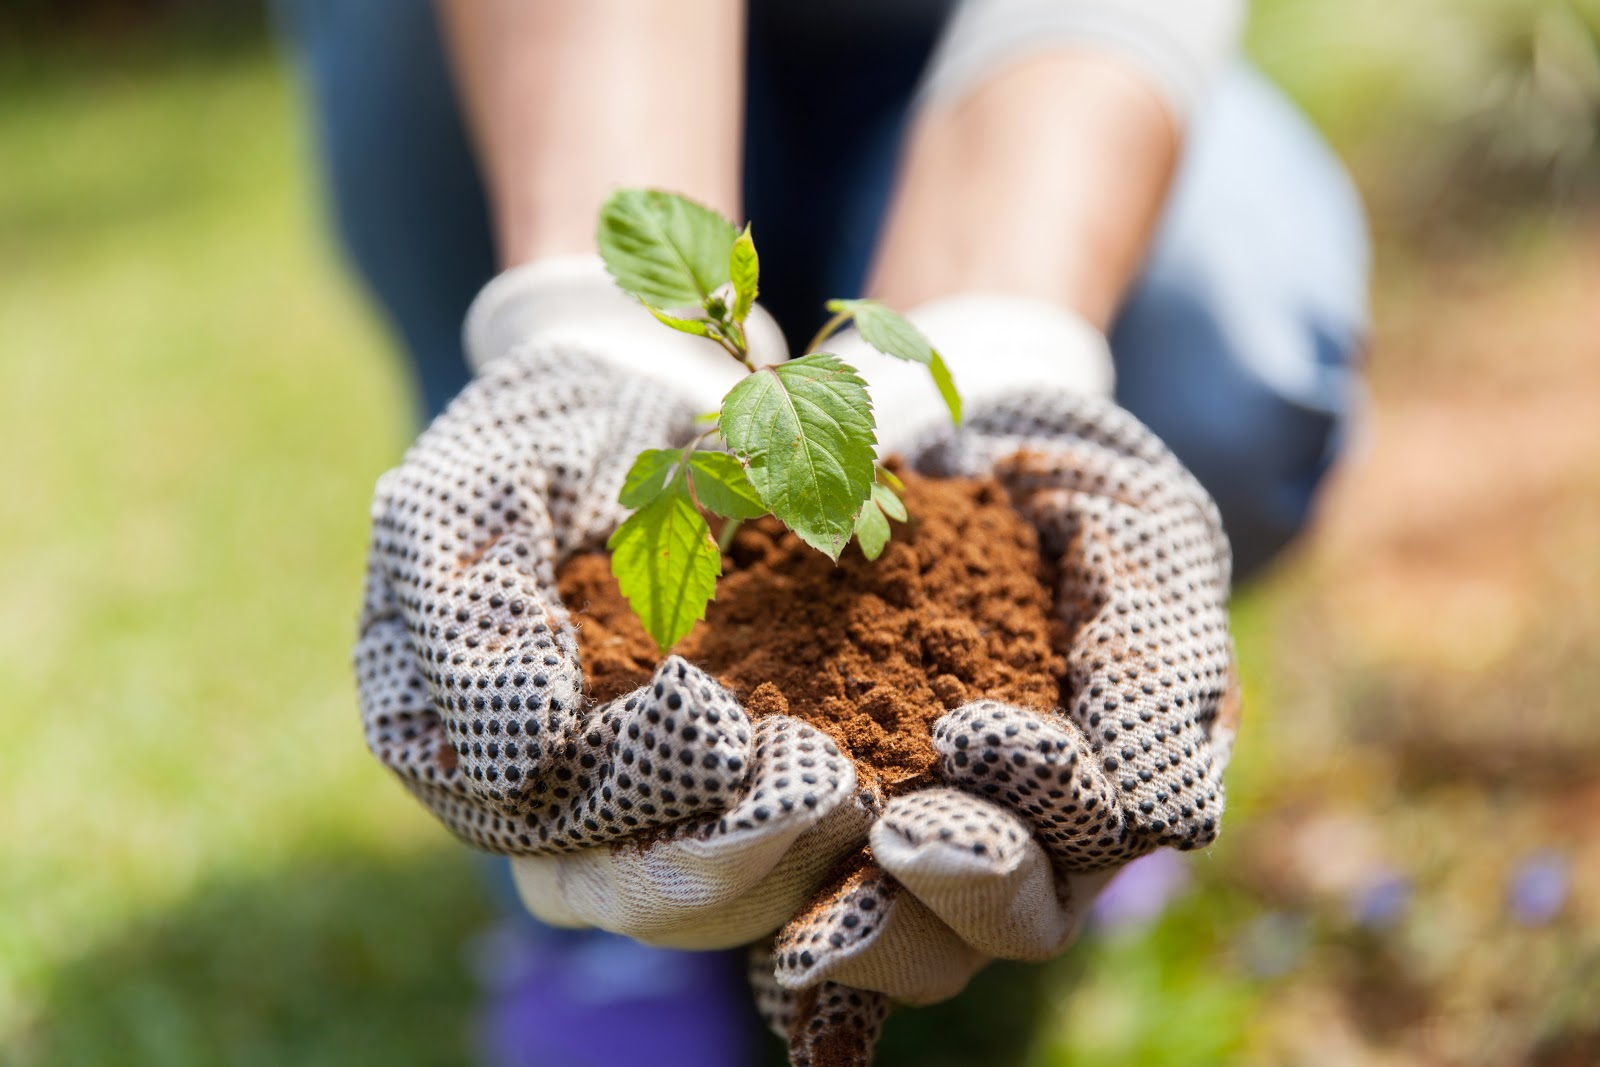 Hands holding a small plant in dirt outside tranquil